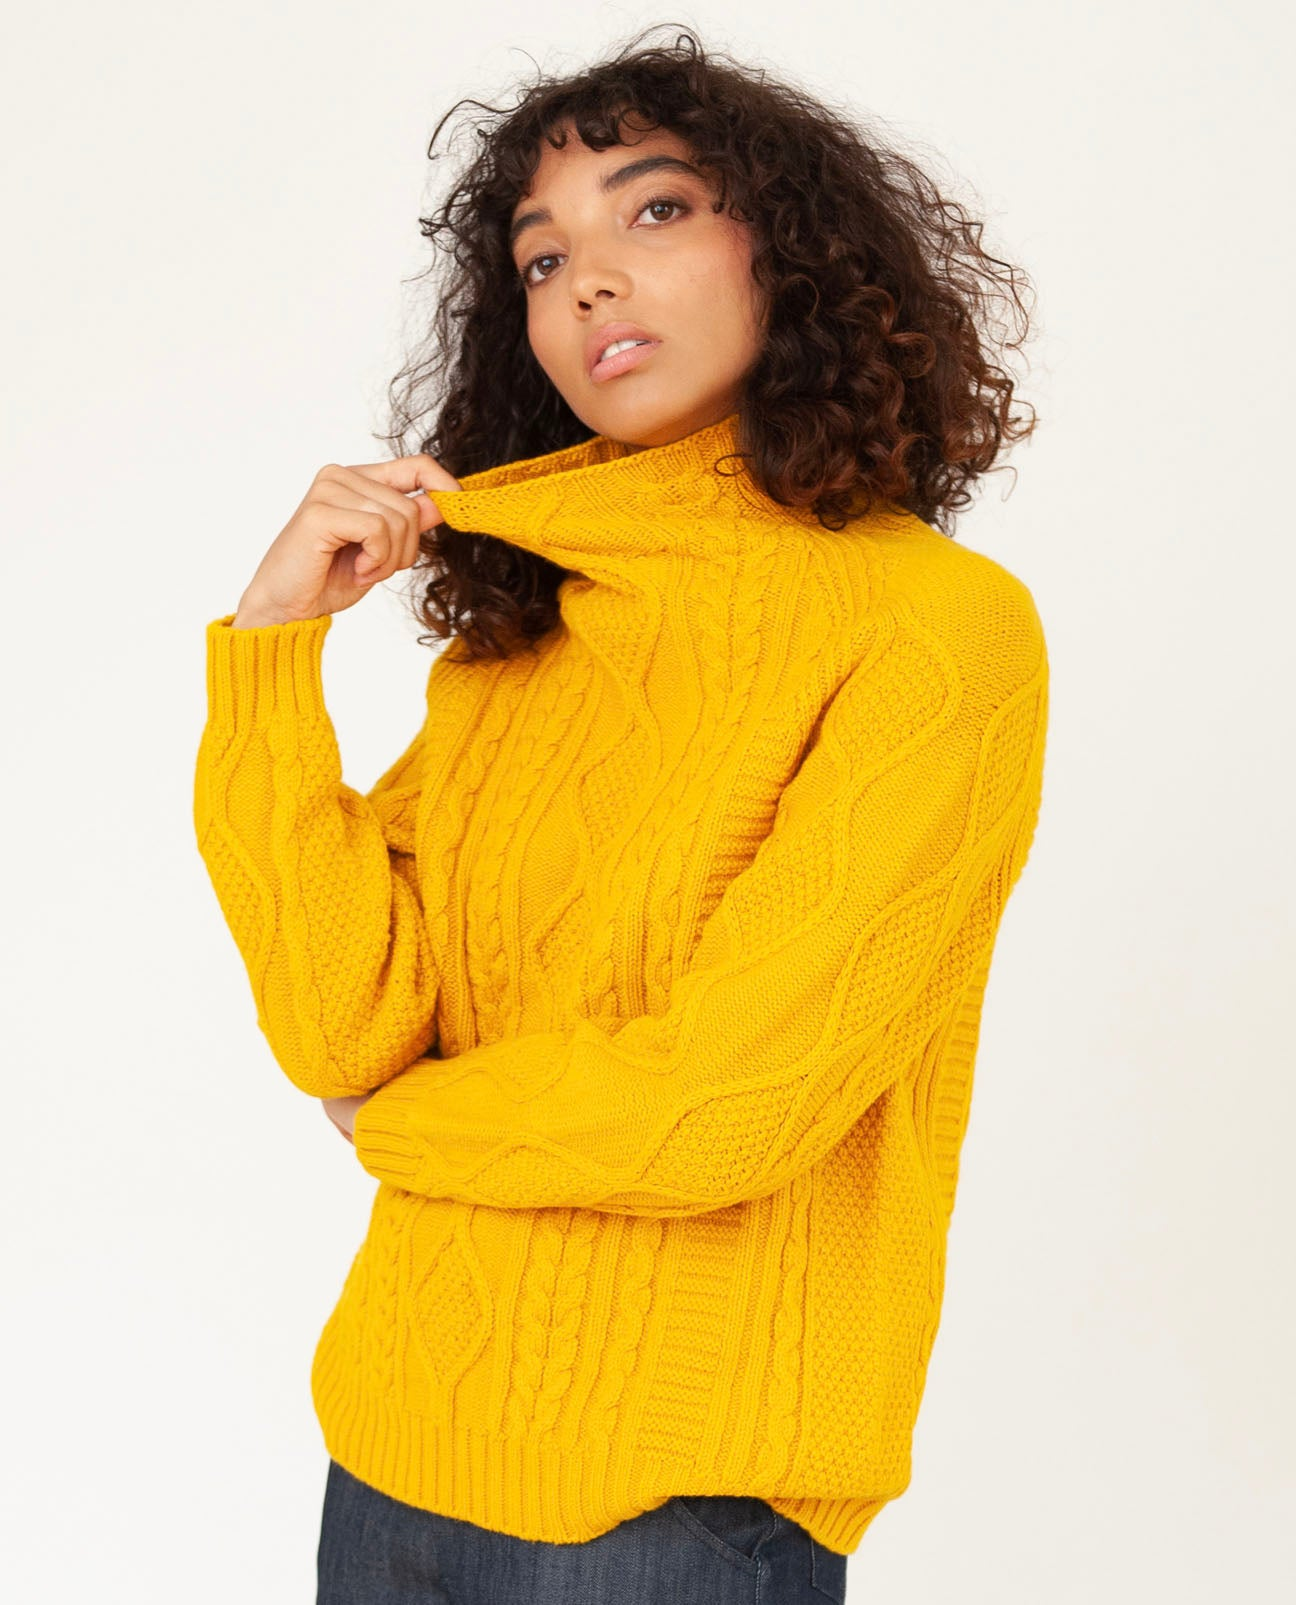 BLYTHE Superfine Lambswool Jumper In Golden Eye